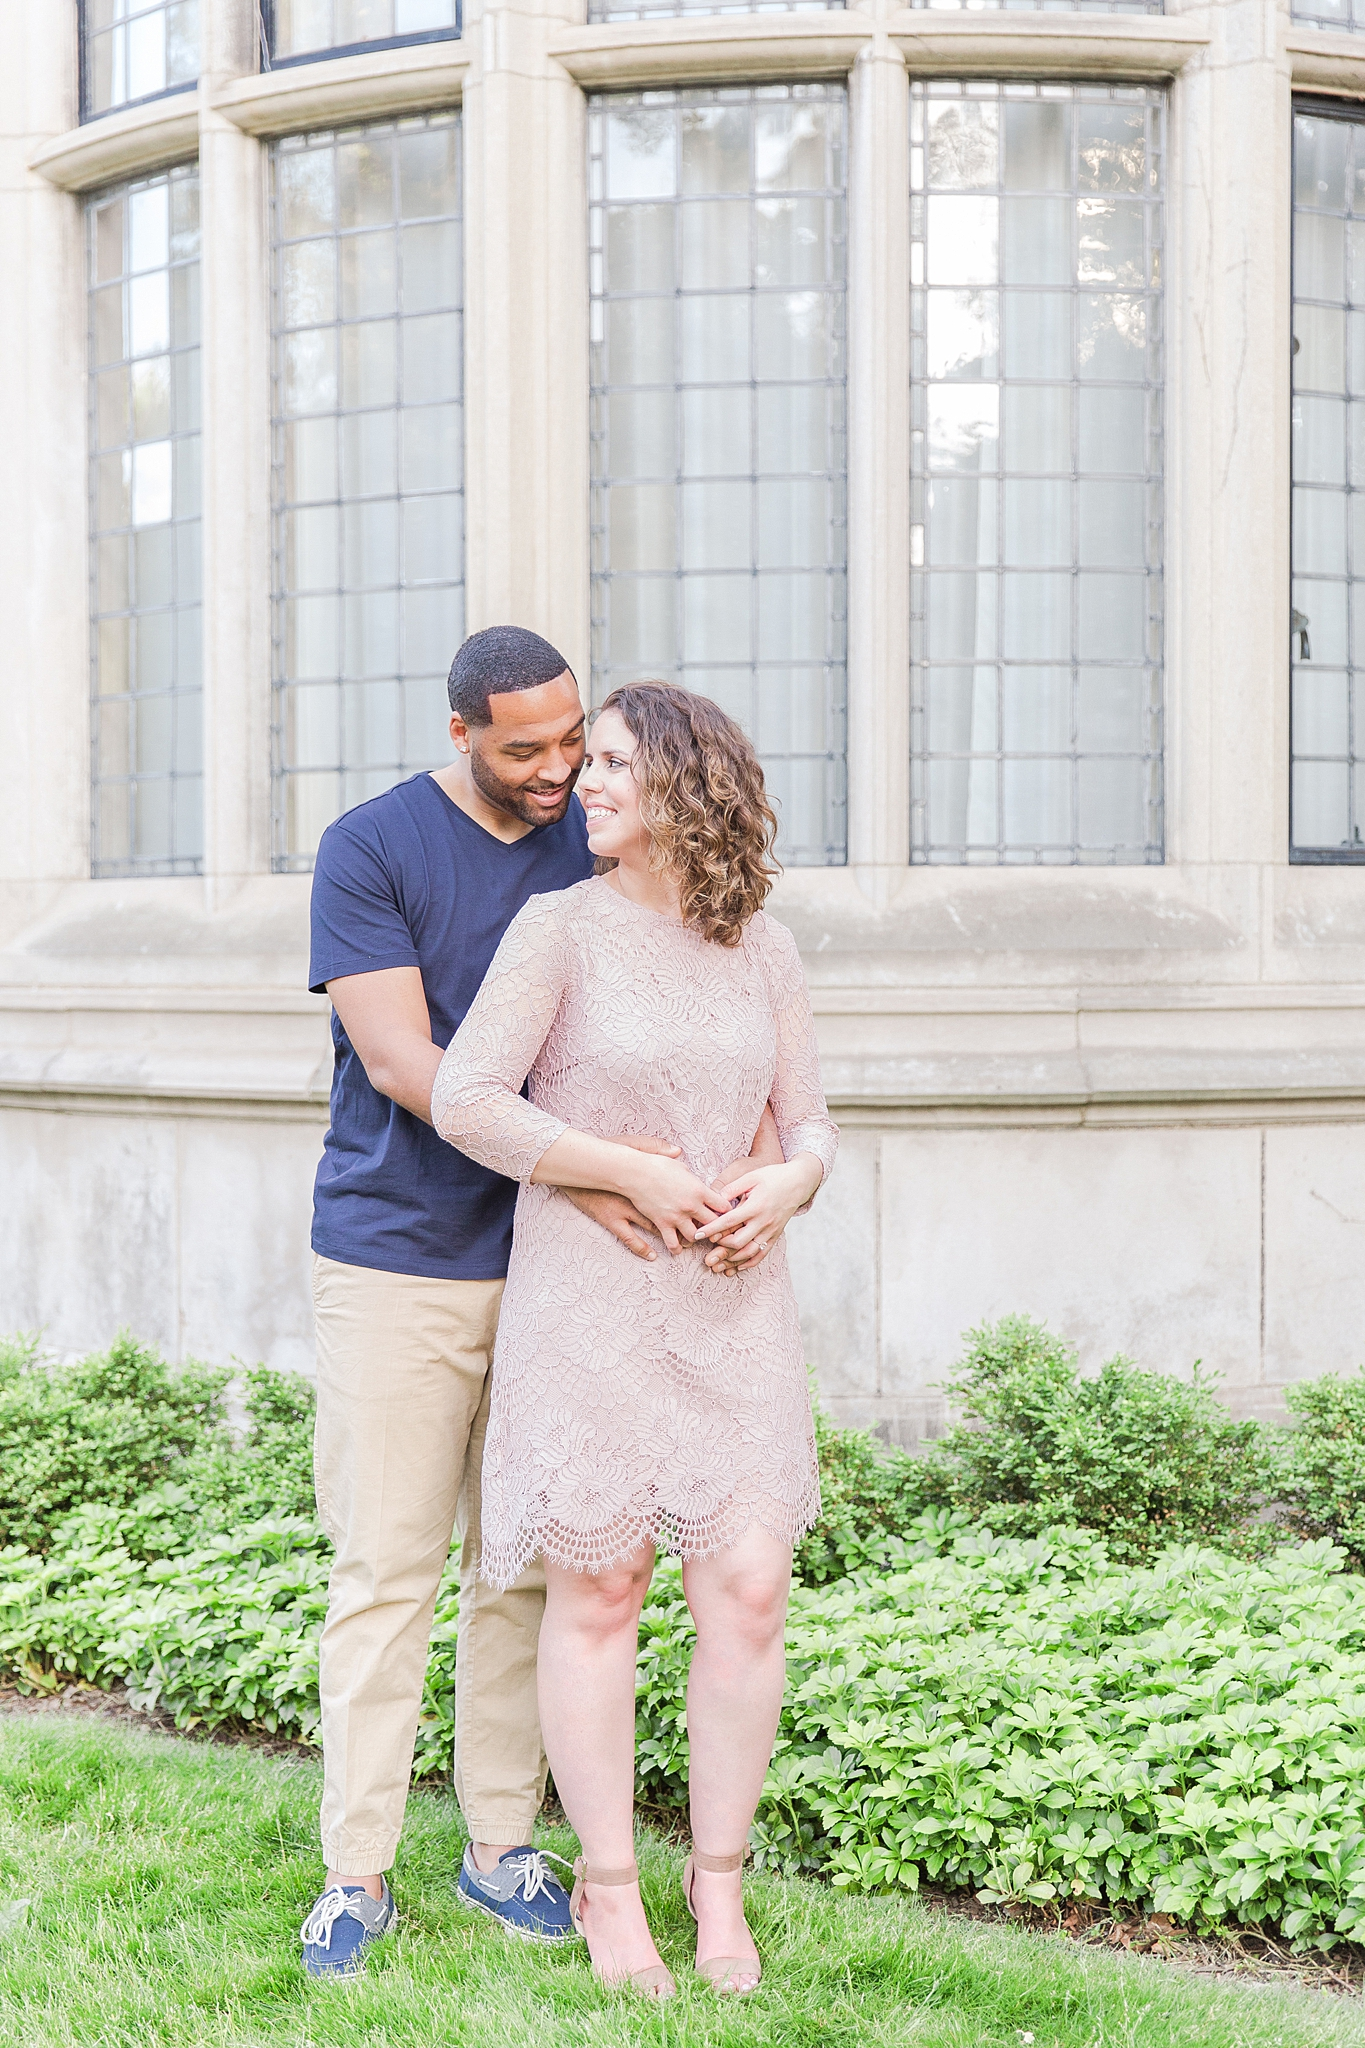 joyful-college-campus-engagement-photography-at-university-of-michigan-in-ann-arbor-mi-by-courtney-carolyn-photography_0005.jpg